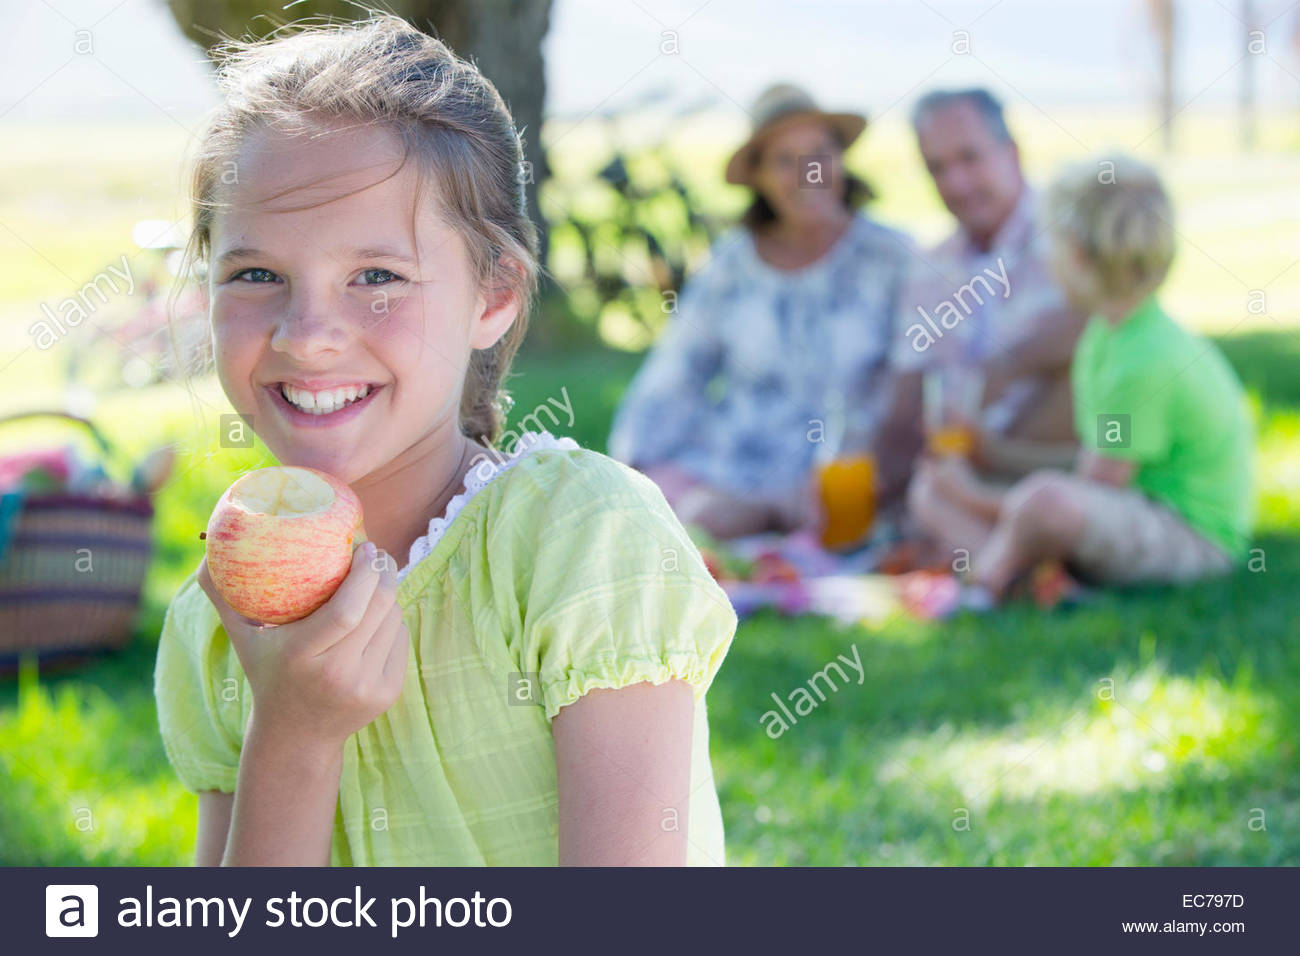 Portrait of girl eating apple with picnicking family in background - Stock Image